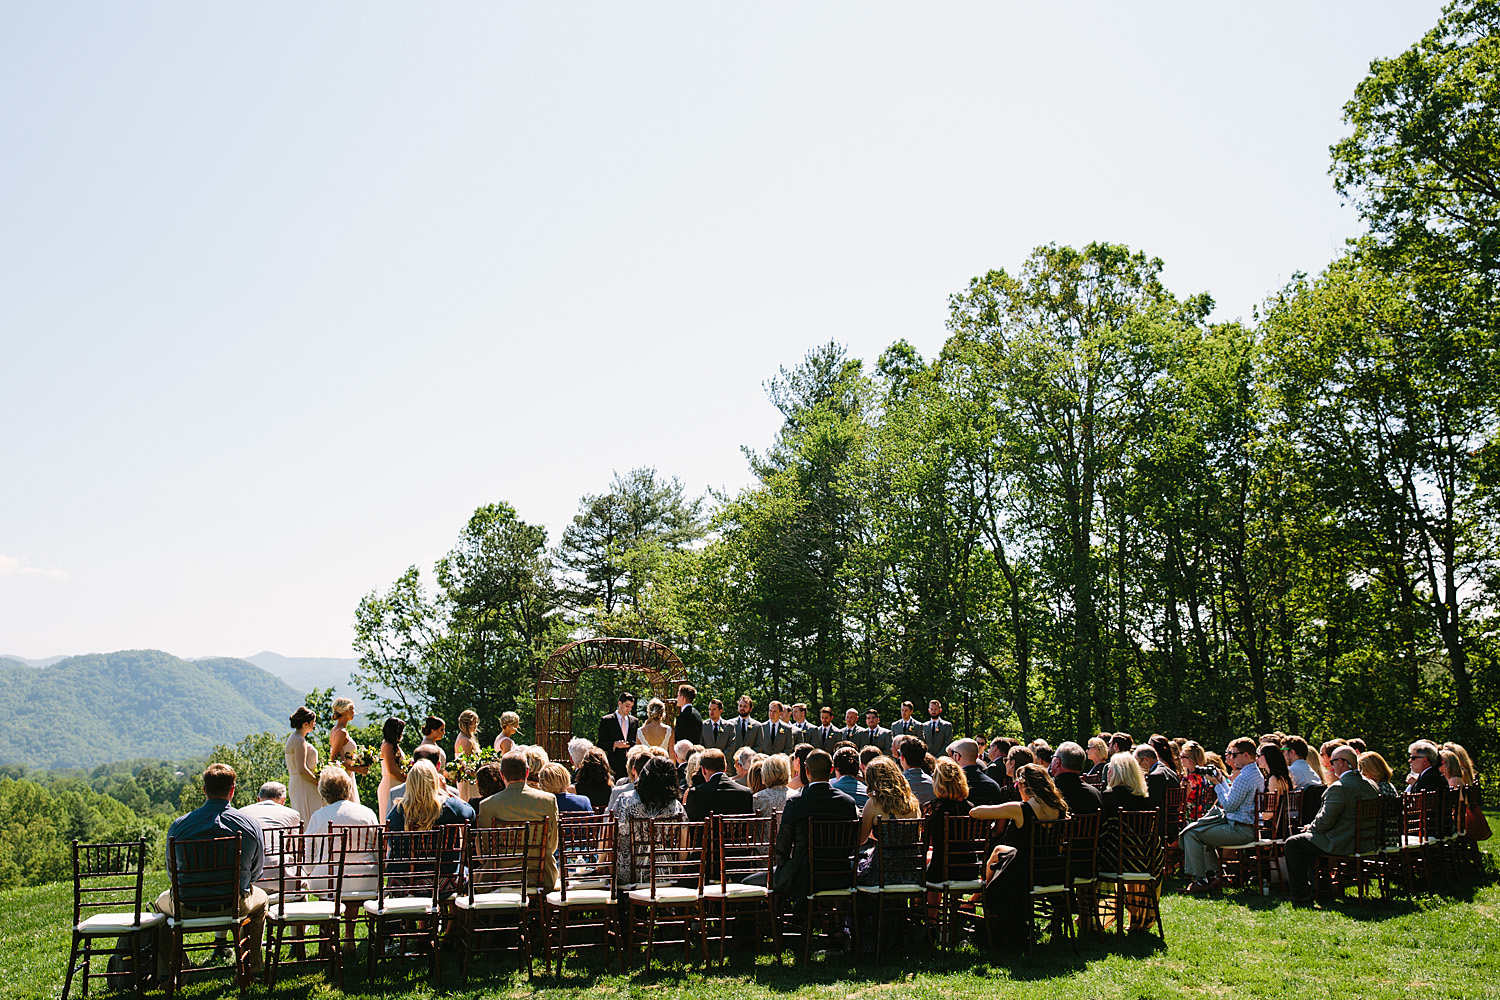 Jeremy-Russell-Asheville-The-Ridge-Wedding-1705-50.jpg